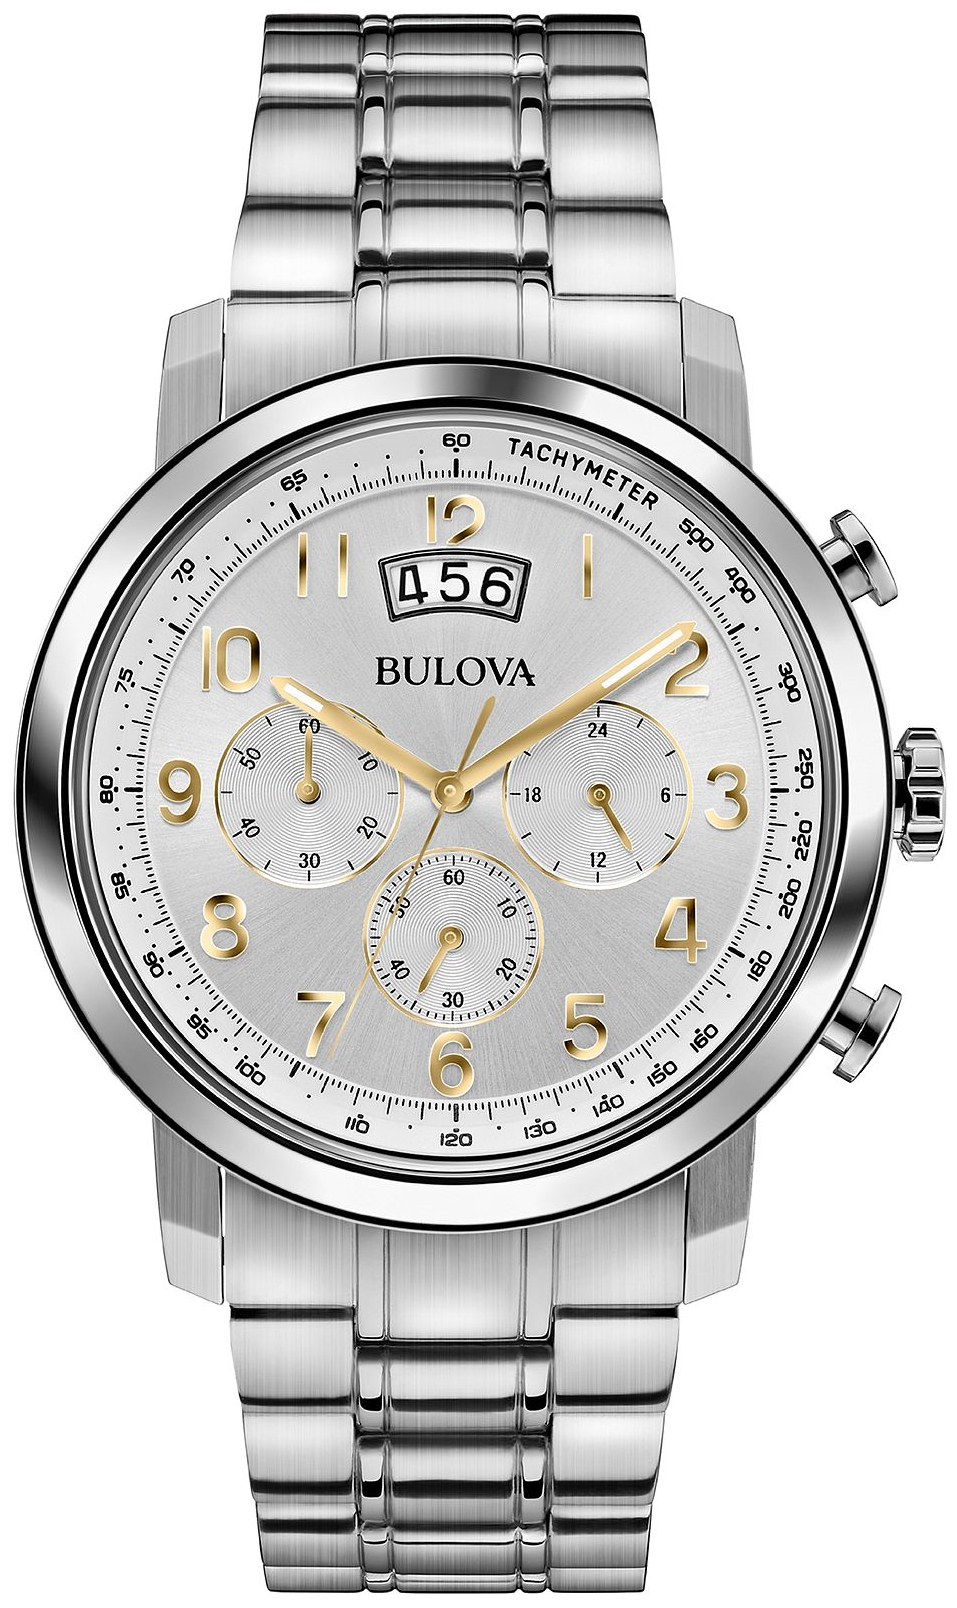 Bulova Men's Chronograph Watch 42mm